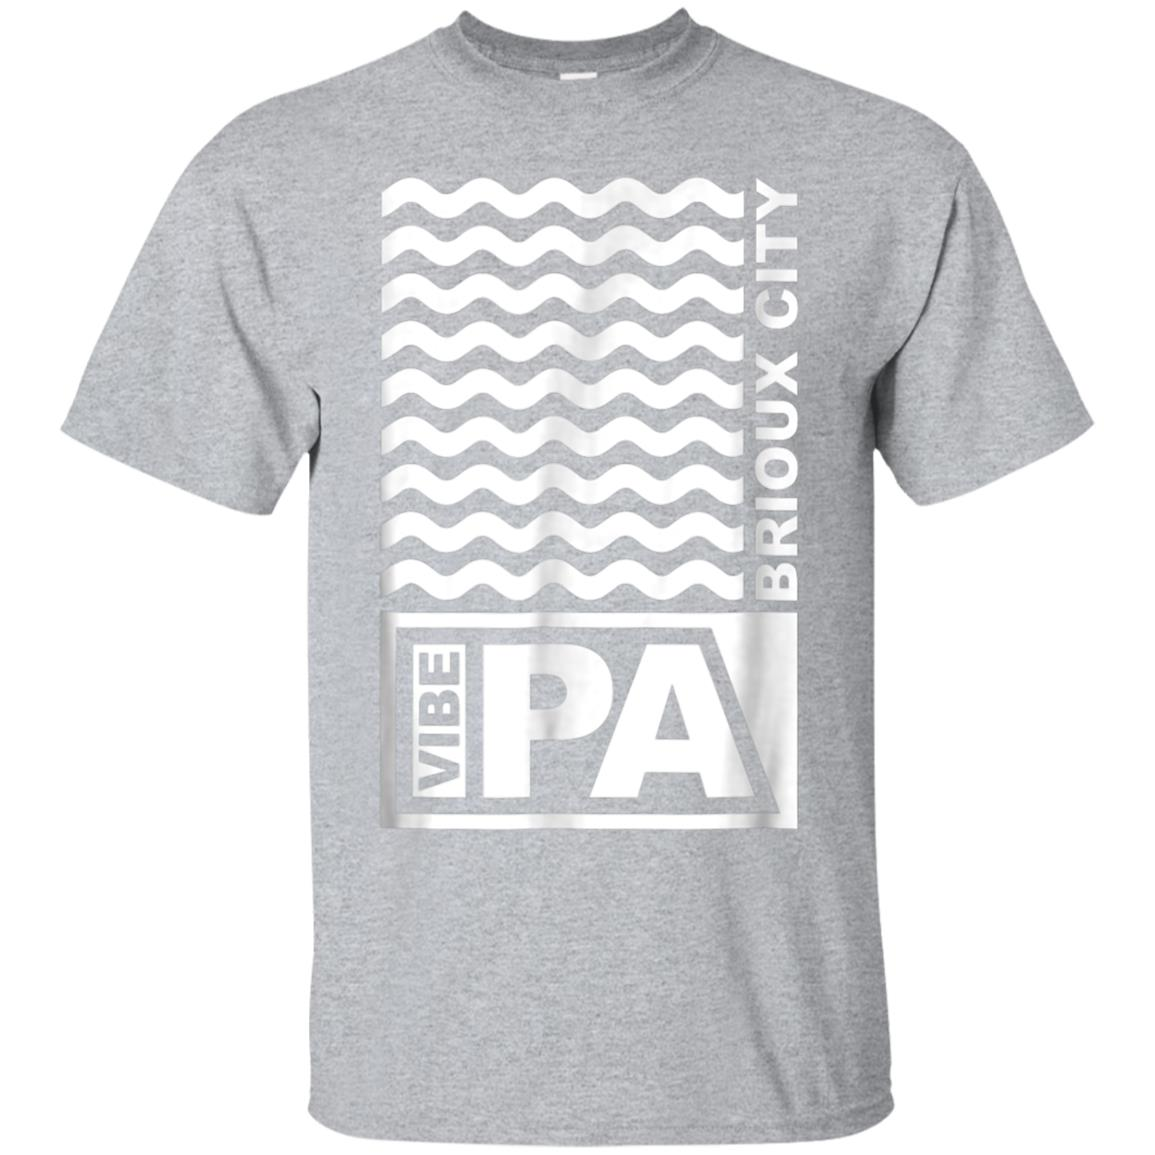 Vibe Rations IPA Brioux City T Shirt Sioux City Iowa 99promocode